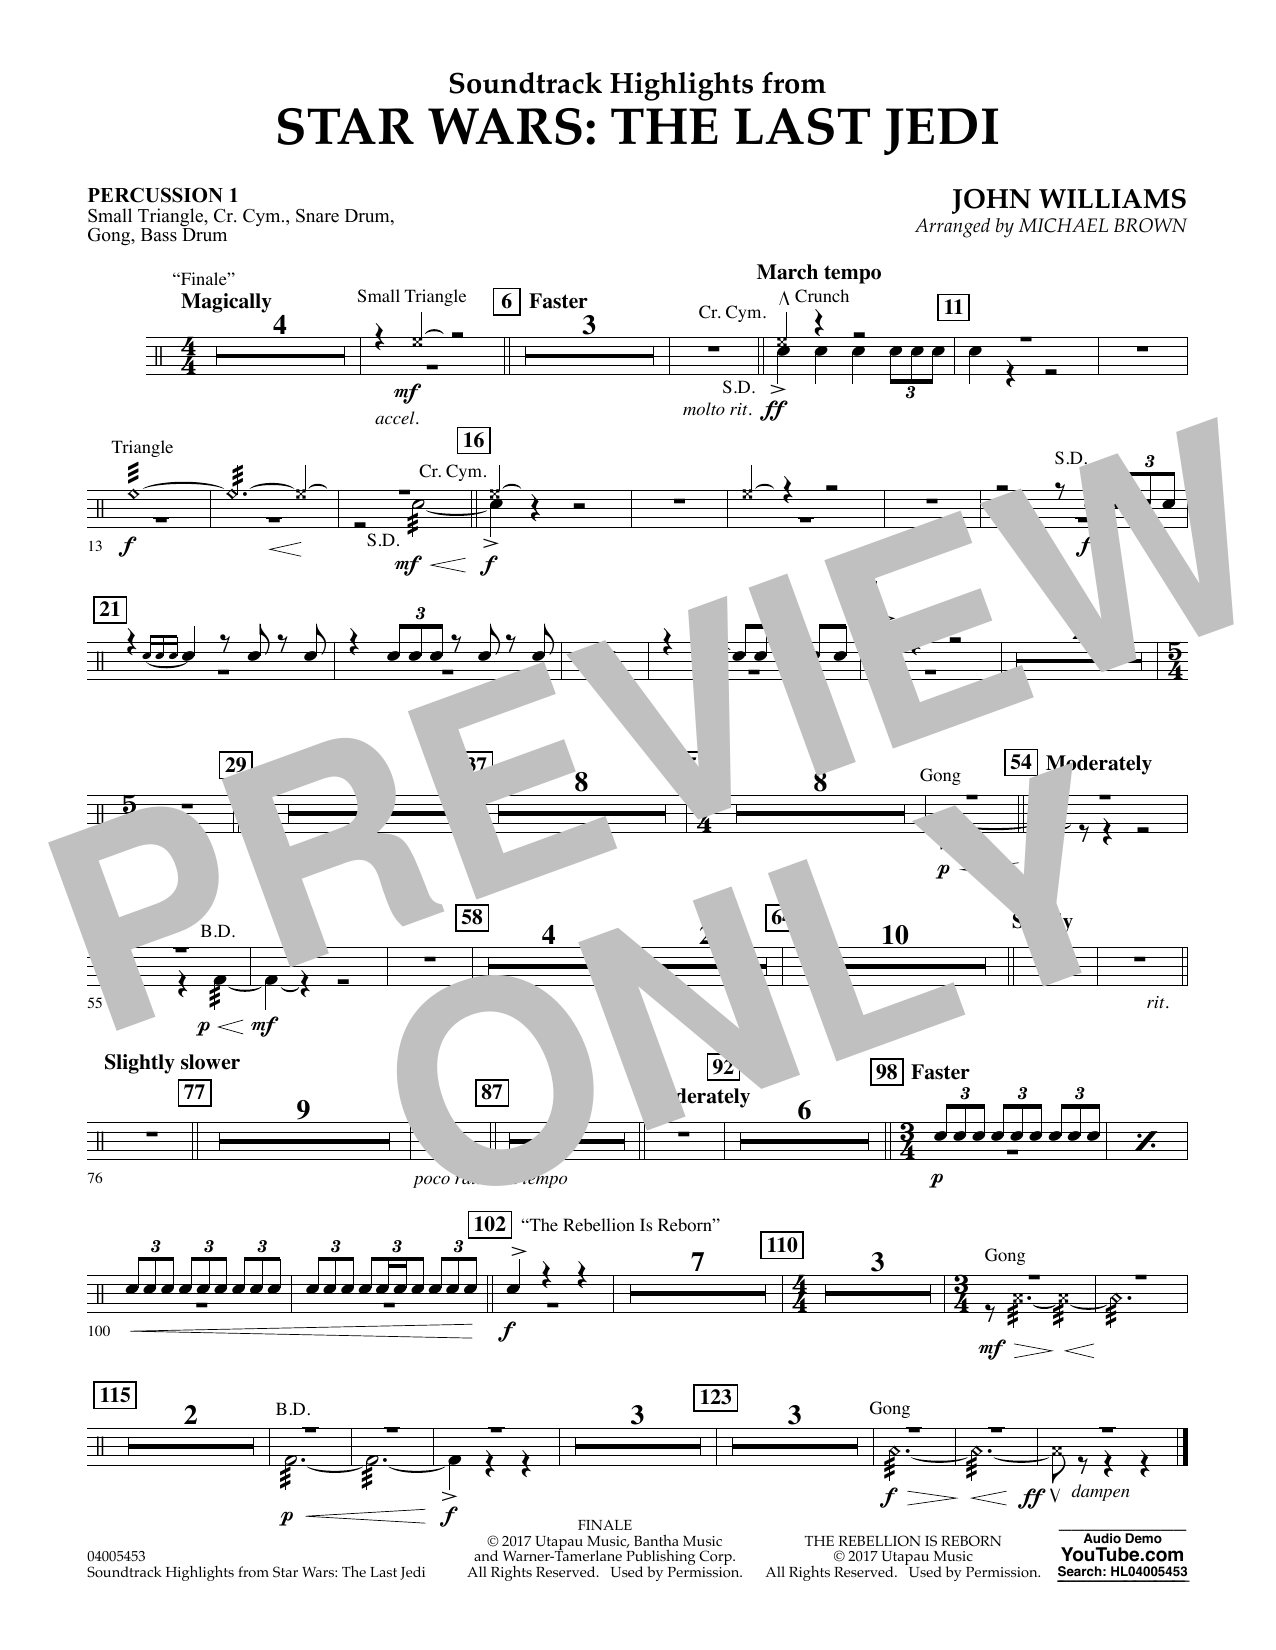 Michael Brown Soundtrack Highlights from Star Wars: The Last Jedi - Percussion 1 sheet music notes and chords. Download Printable PDF.